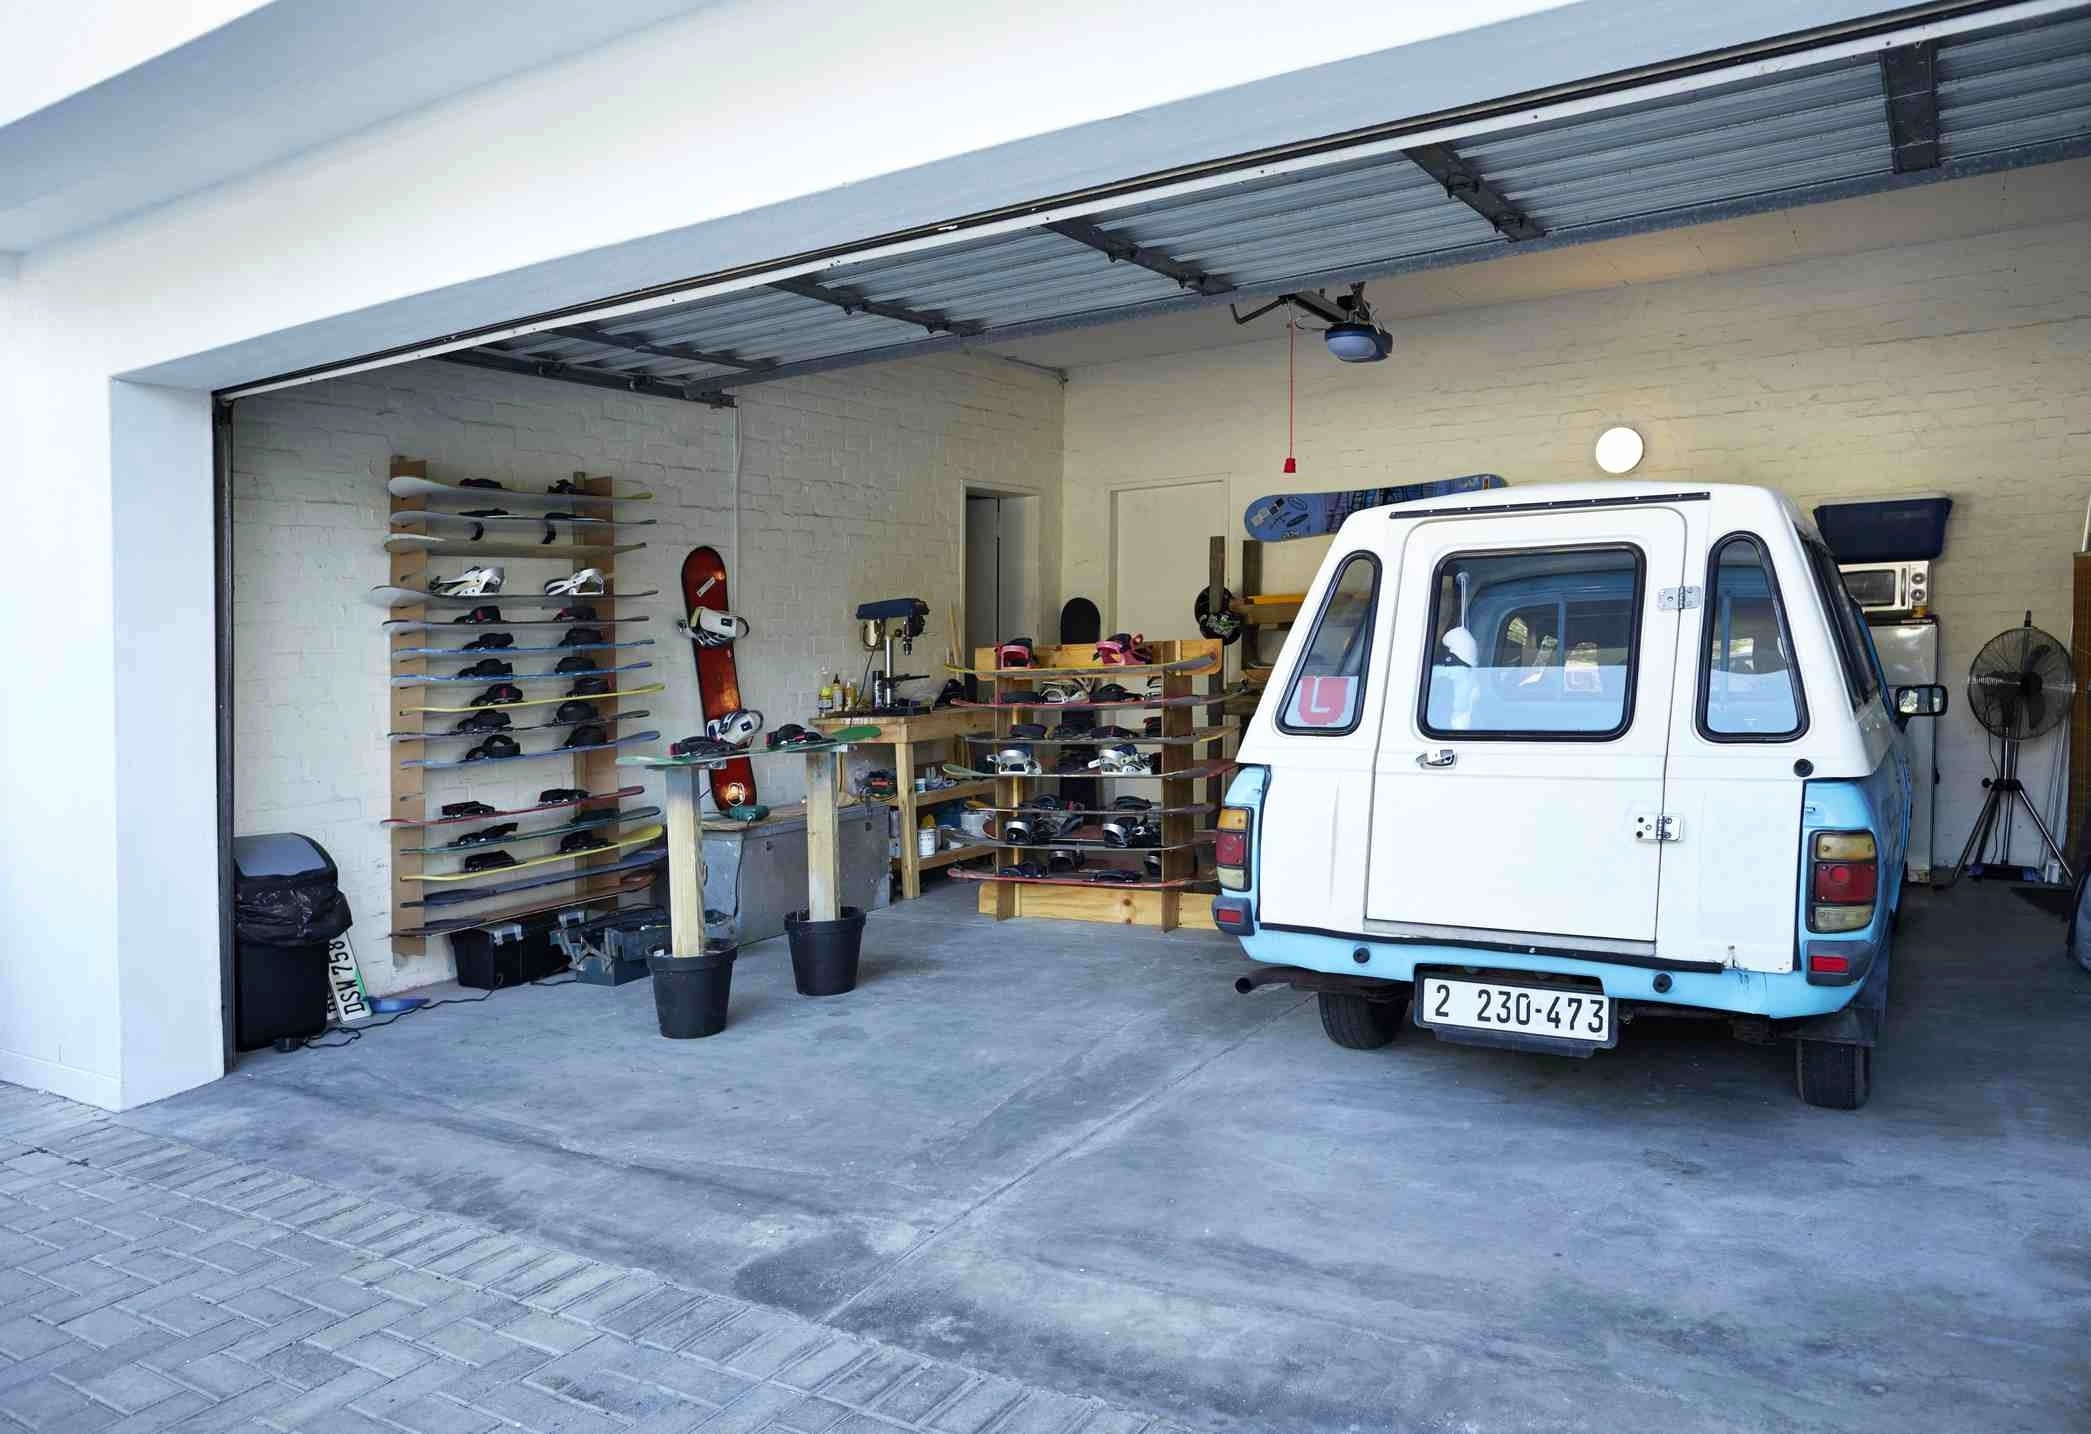 Car Lift For Storage In Garage Schmidt Gallery Design The Most